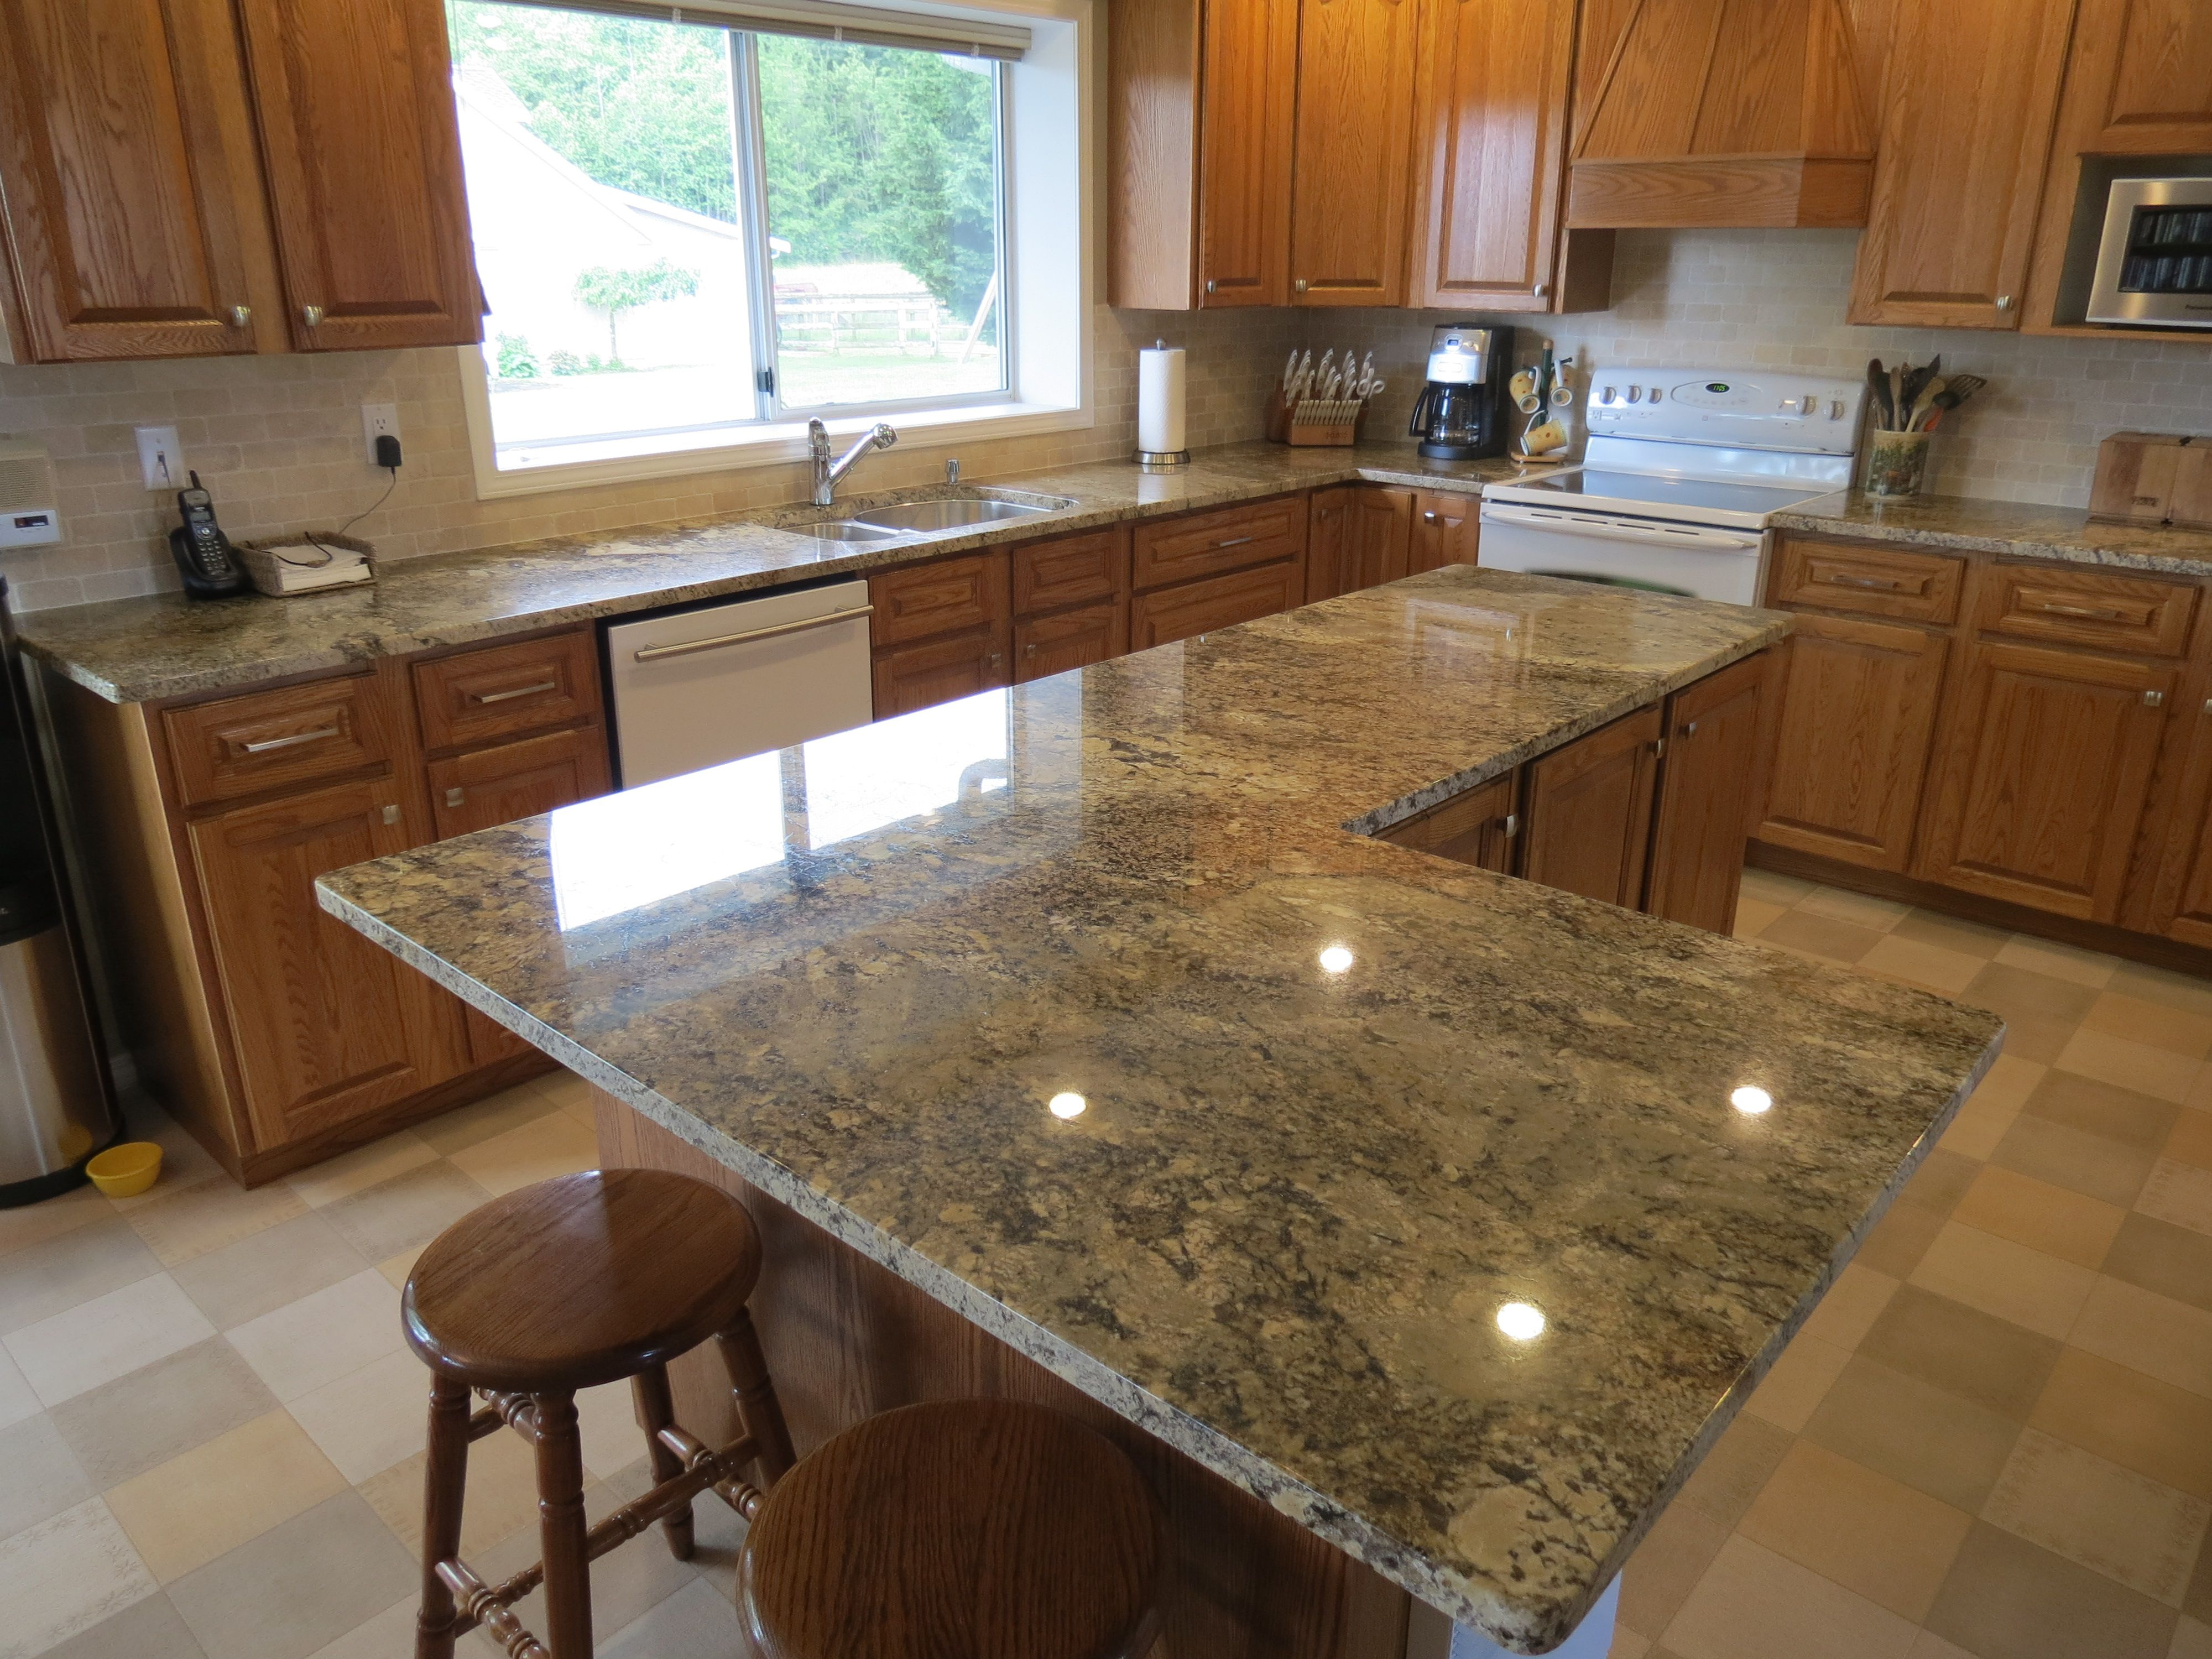 granite countertops countertops for kitchens Pictures of Granite Quartz kitchens Granite Quartz countertops are just one of the things we specialize in